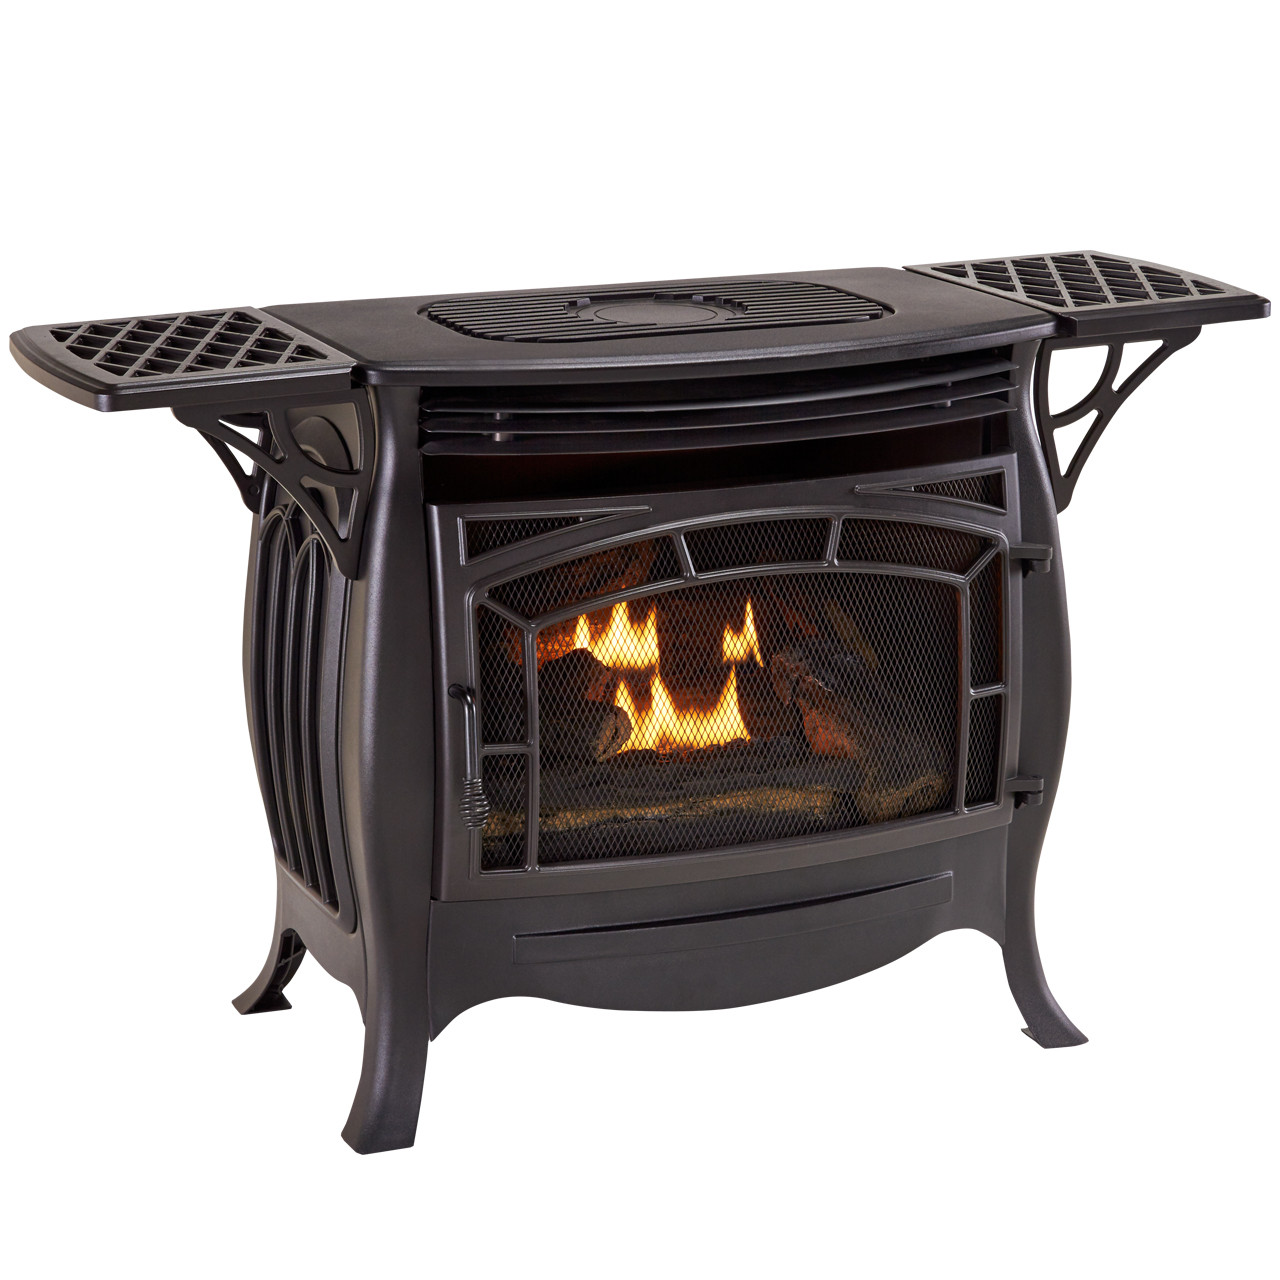 Duluth Forge Dual Fuel Ventless Gas Stove Model Fdsr25